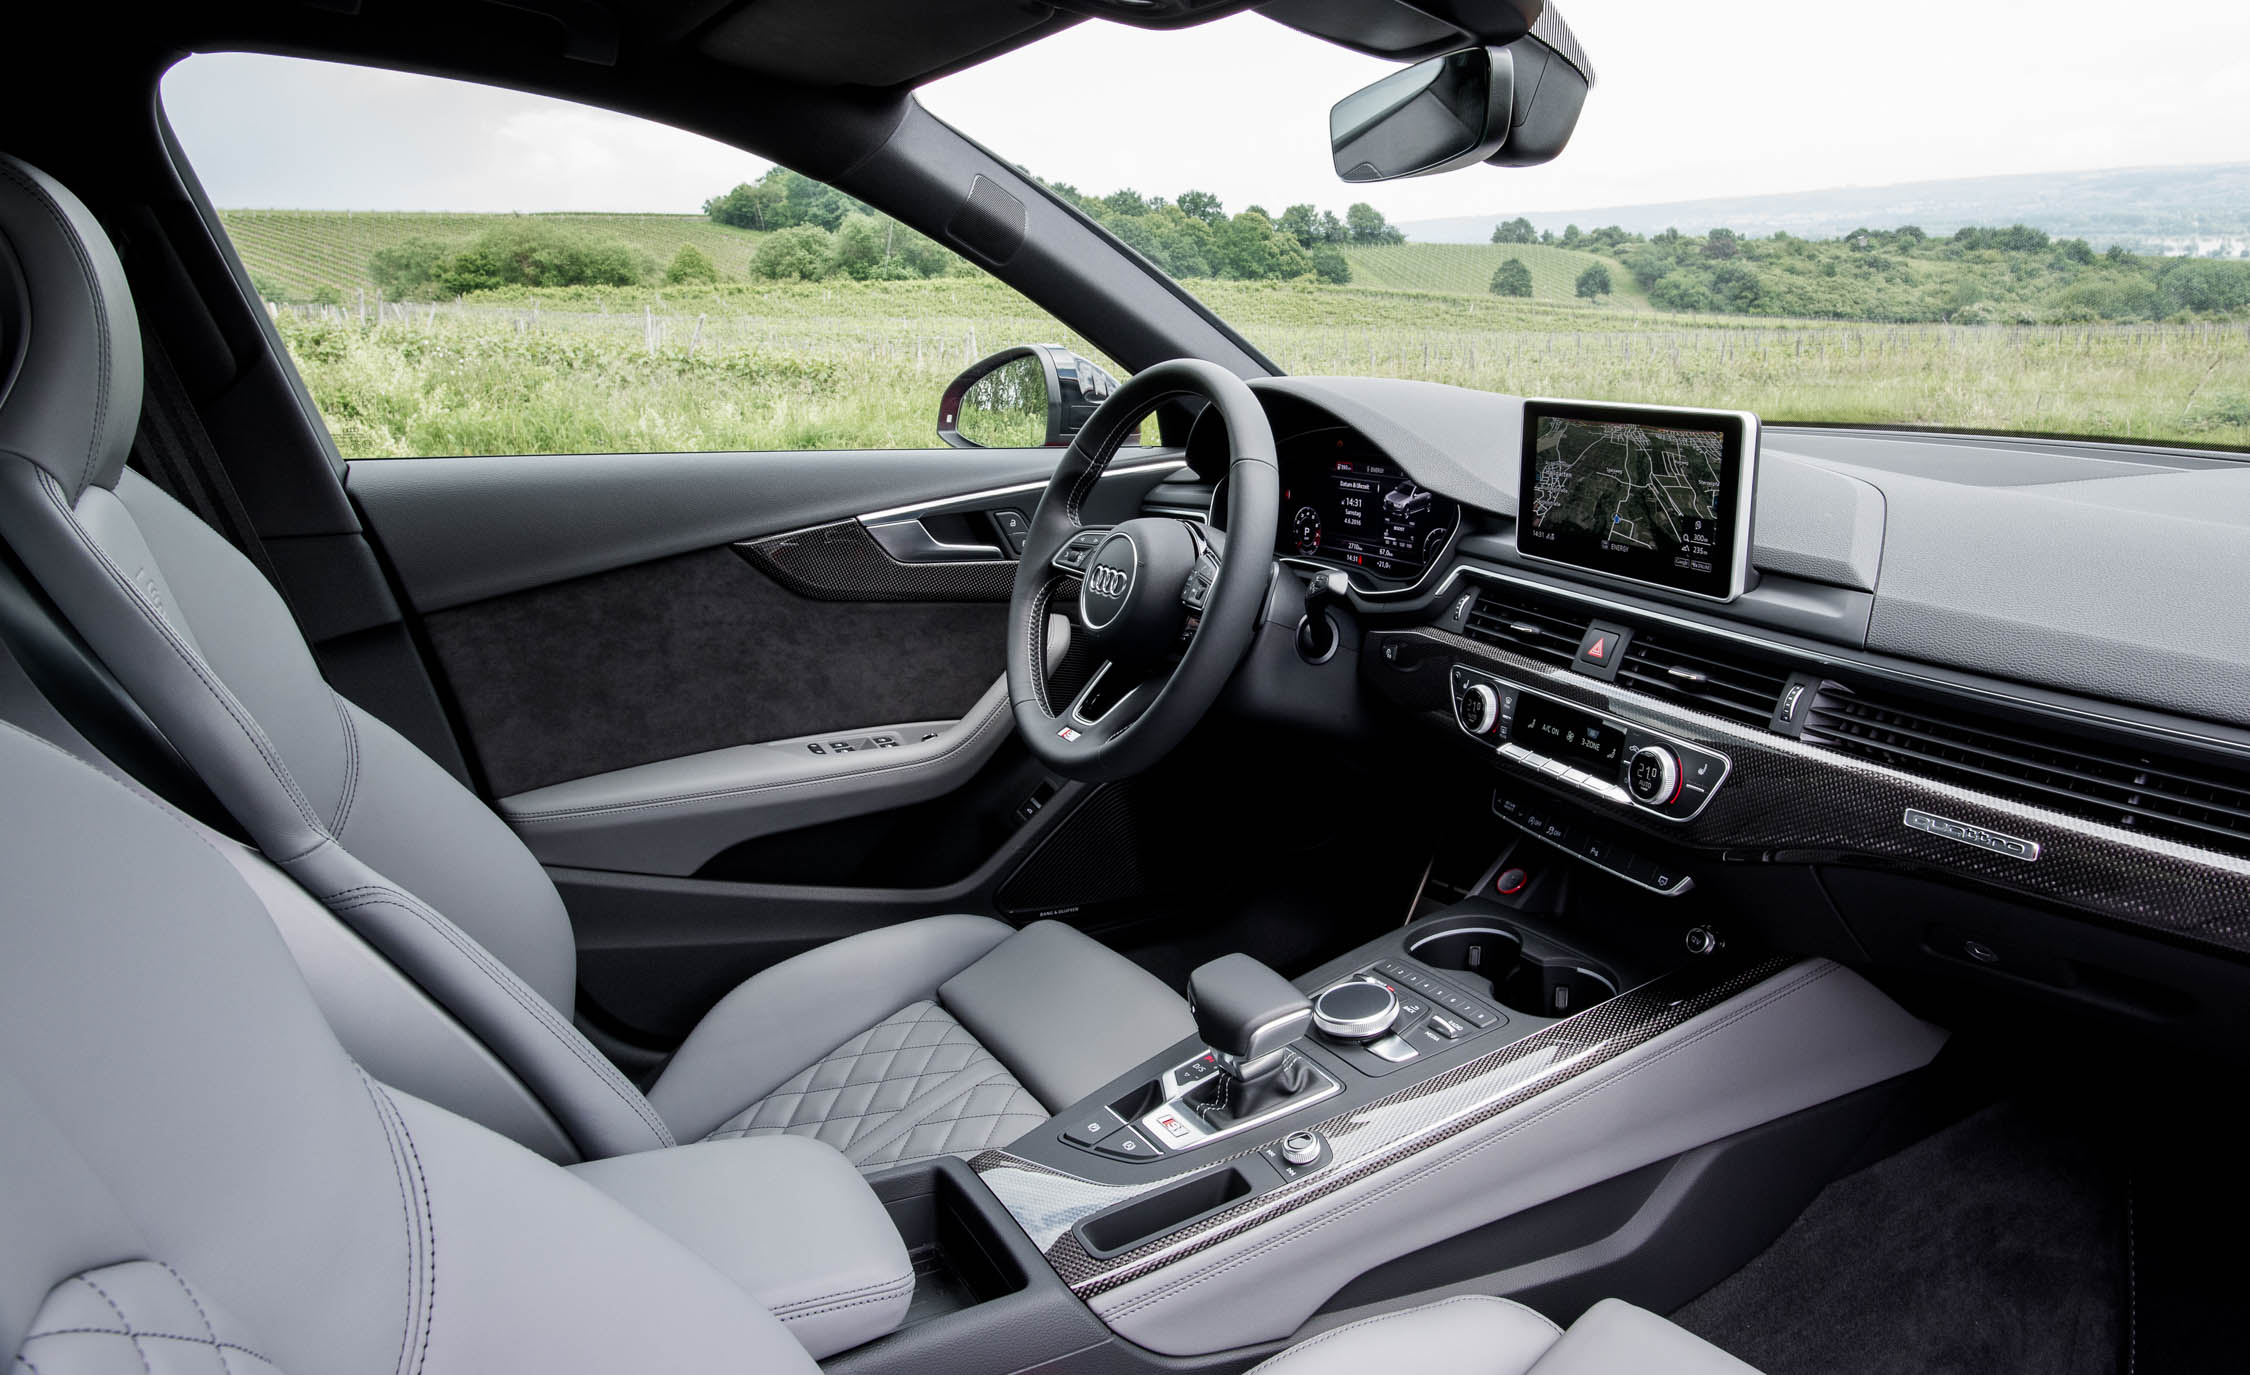 2018 Audi S4 Interior Driver Cockpit Steering And Dash (Photo 6 of 17)